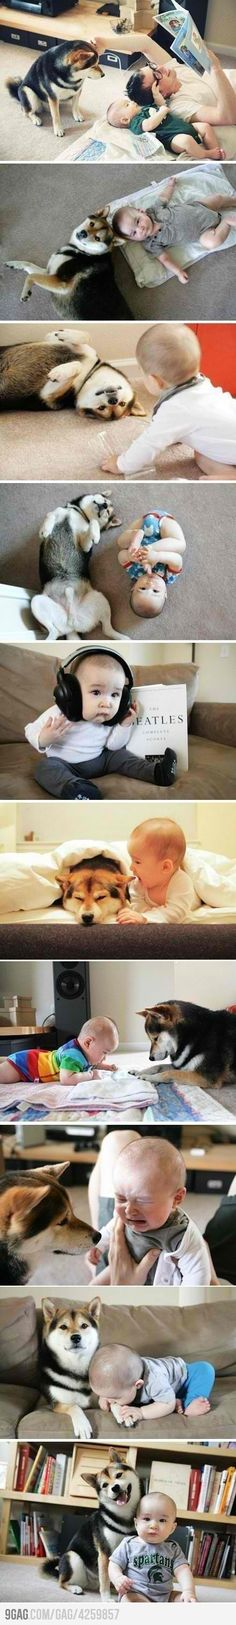 How adorable!!!!!! anim, friends, shiba inu, pet, future babies, children, baby dogs, puppi, kid